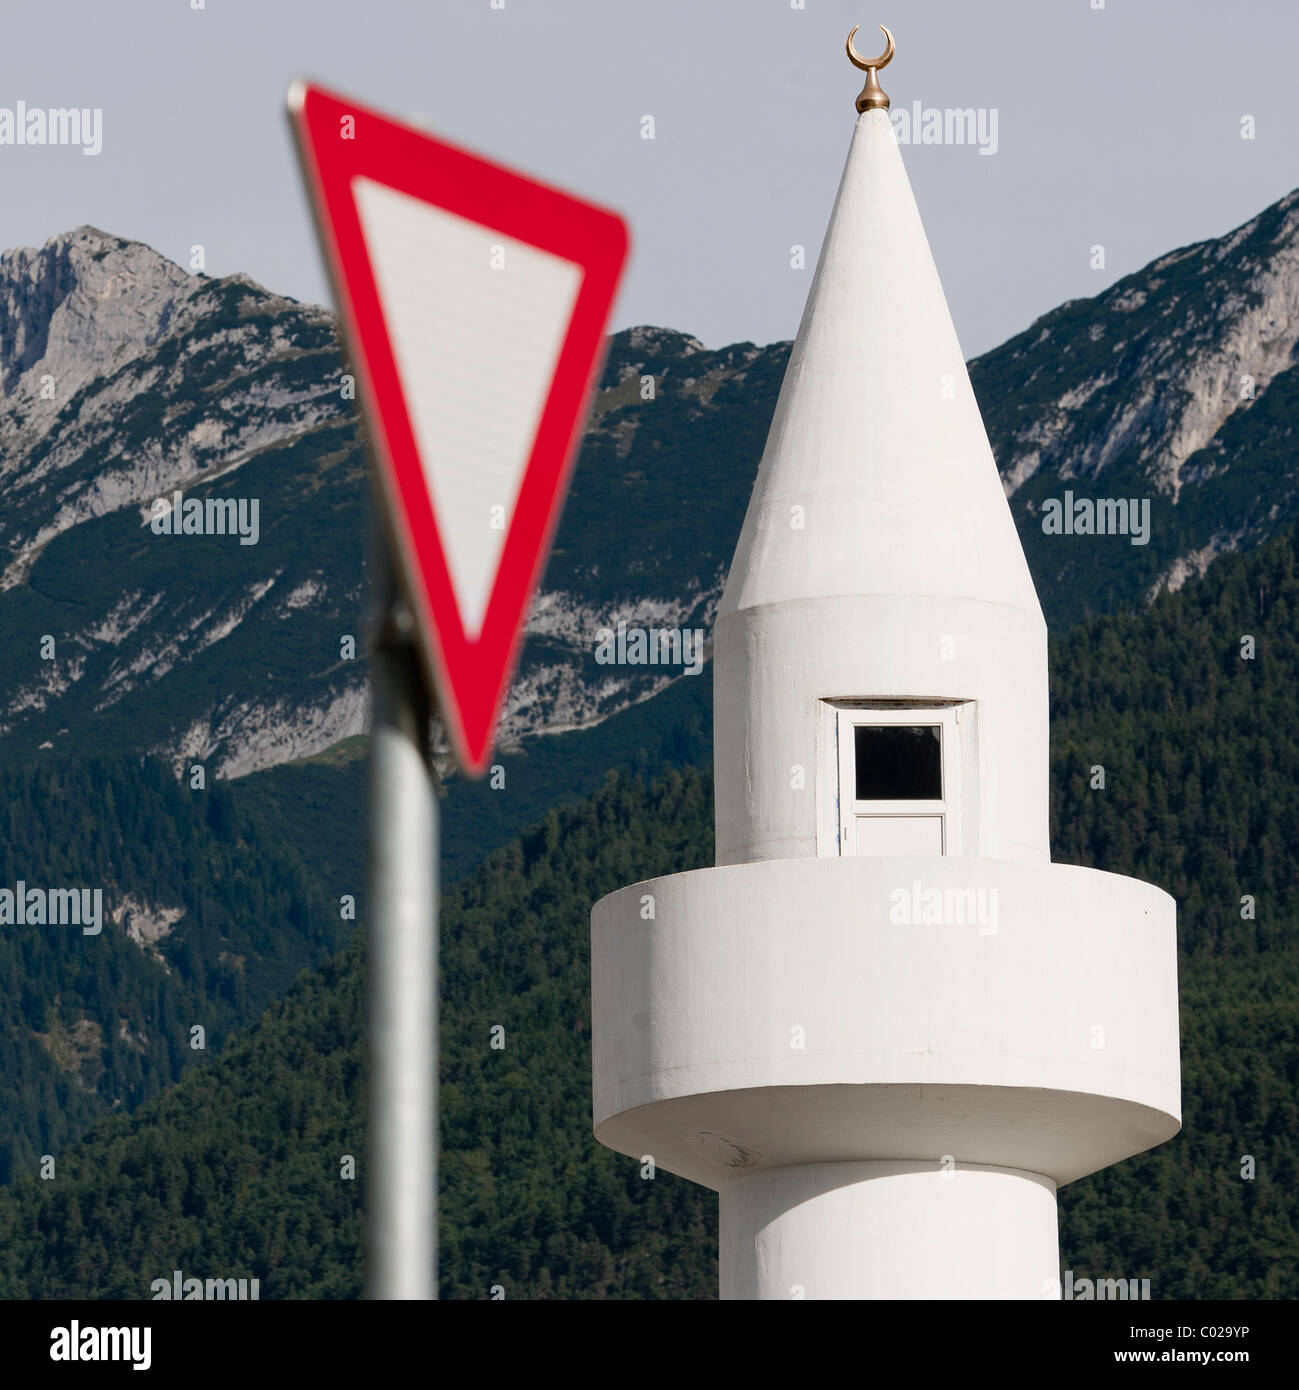 Yield-sign with minaret, controversial mosque in Telfs, Tyrol, Austria, Europe - Stock Image